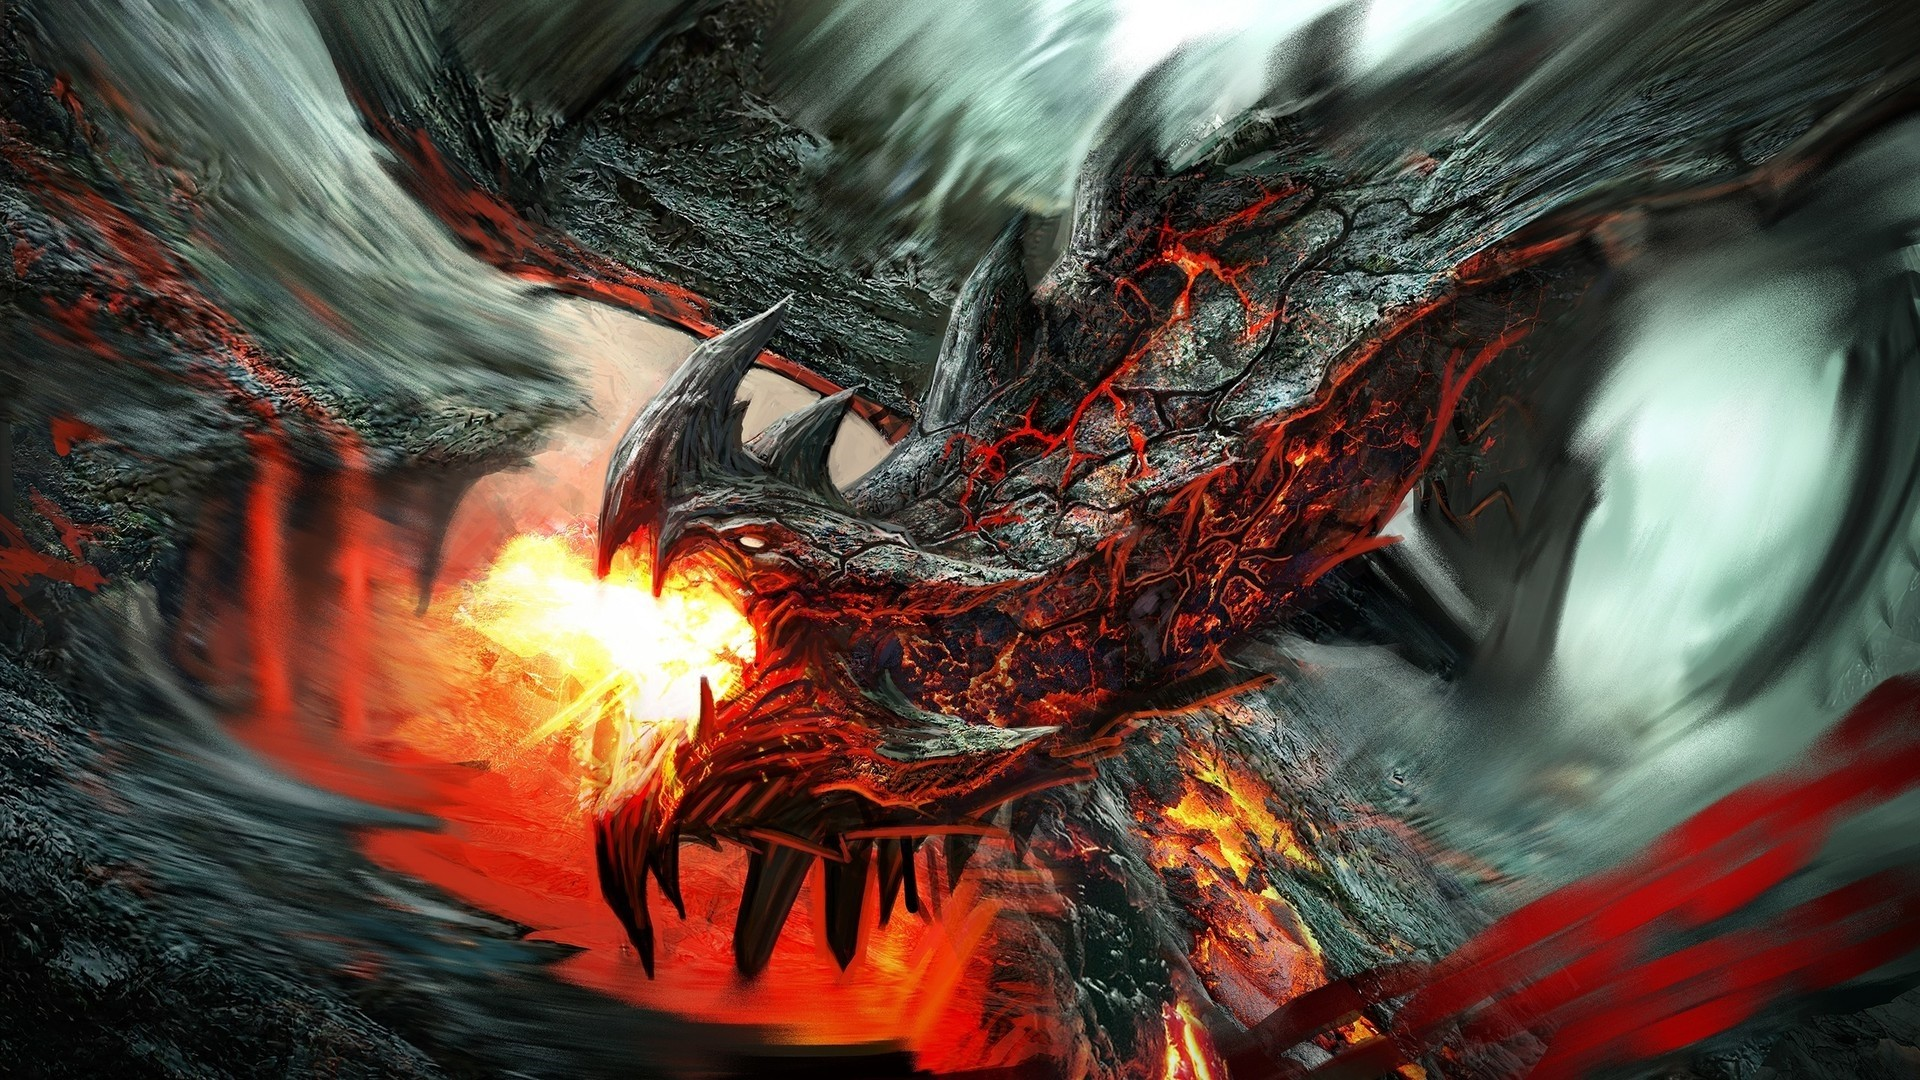 1920x1080 Cool Dragon Wallpapers – fire breathing lava dragon fantasy hd wallpaper  1920×1080 2073